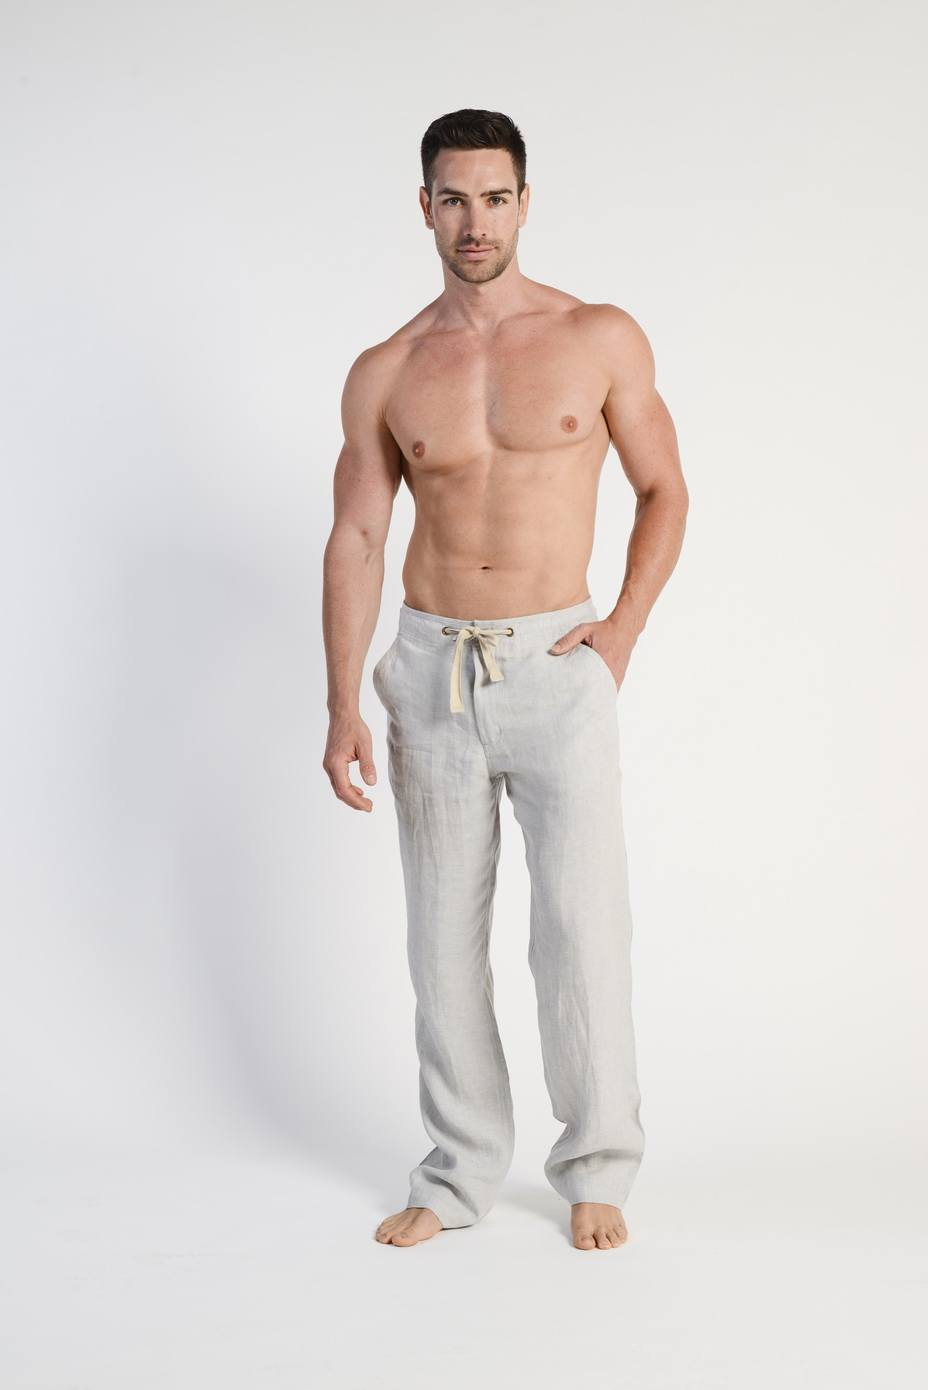 100% Hemp Mens Relaxing Beach Pants with Draw String-Ivory